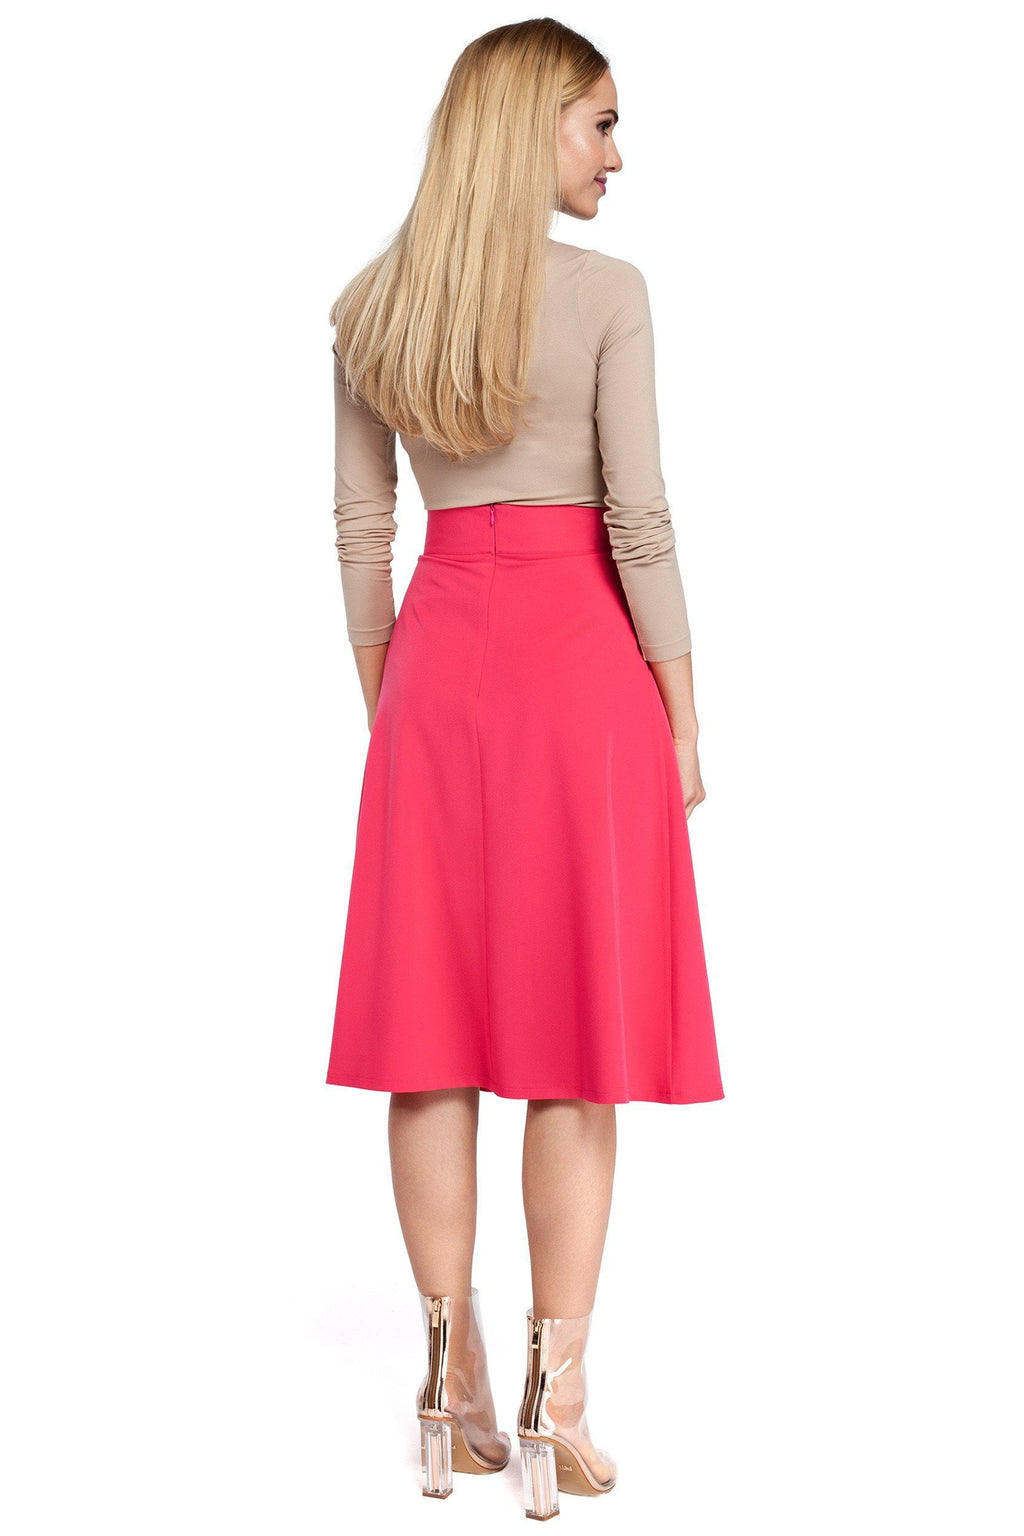 Pleated High Waist Pink Midi Skirt - So Chic Boutique